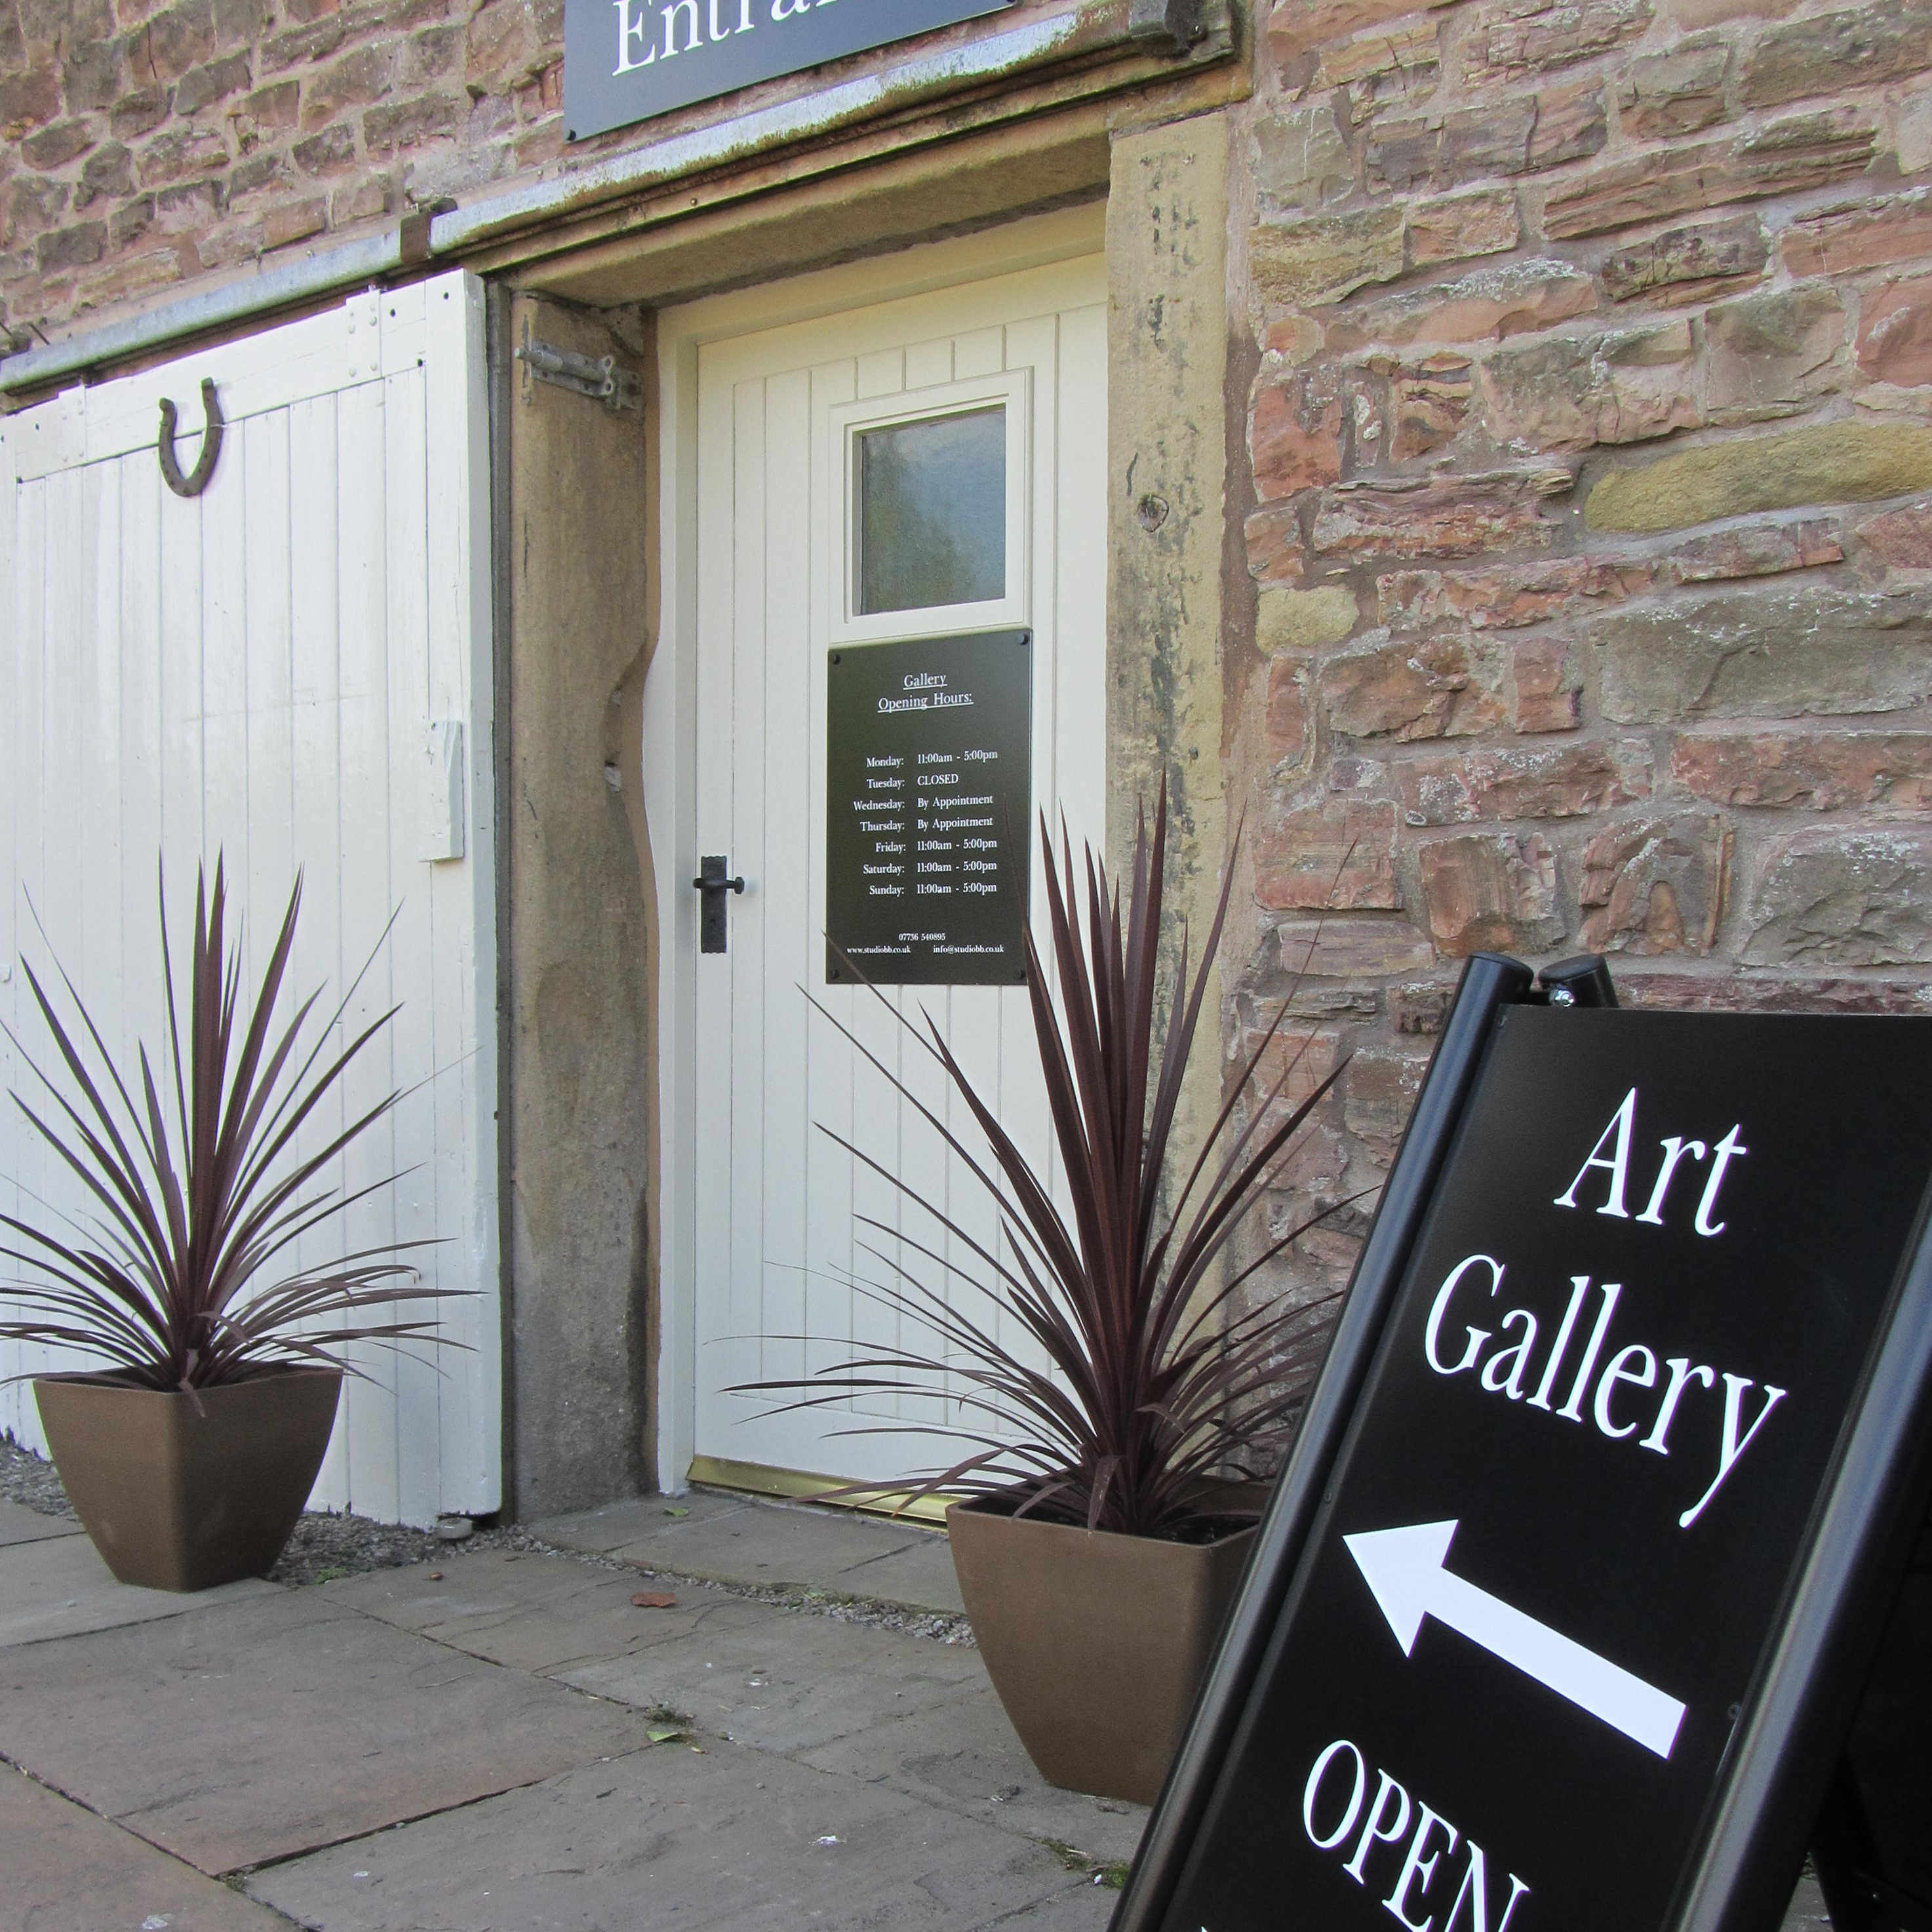 Bowland Atelier, Ribble Valley